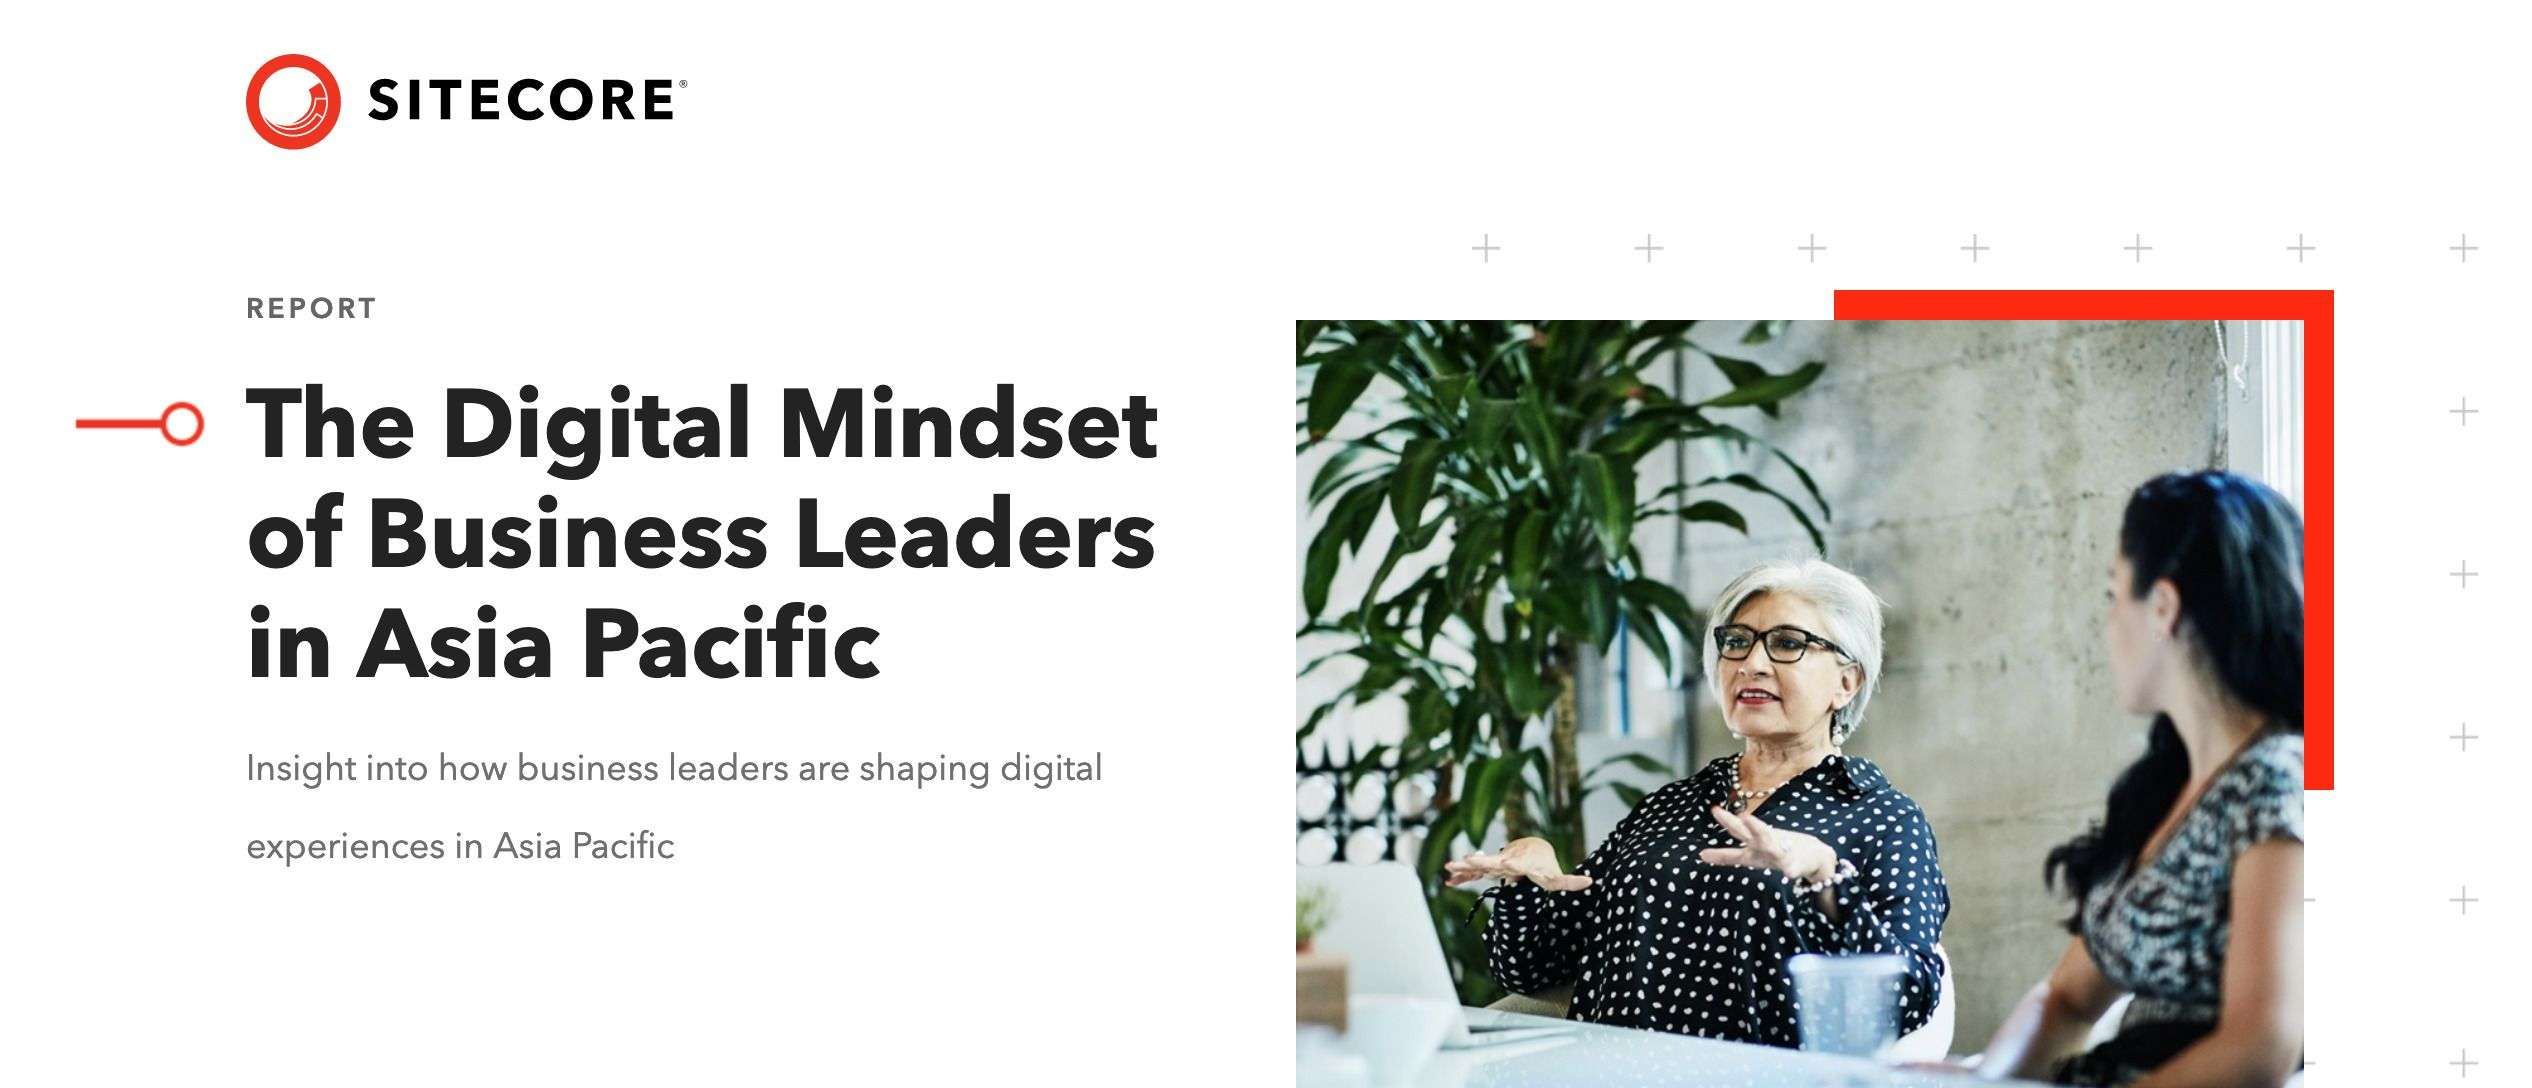 The Digital Mindset of Business Leaders in Asia Pacific - The Digital Mindset of Business Leaders in Asia Pacific